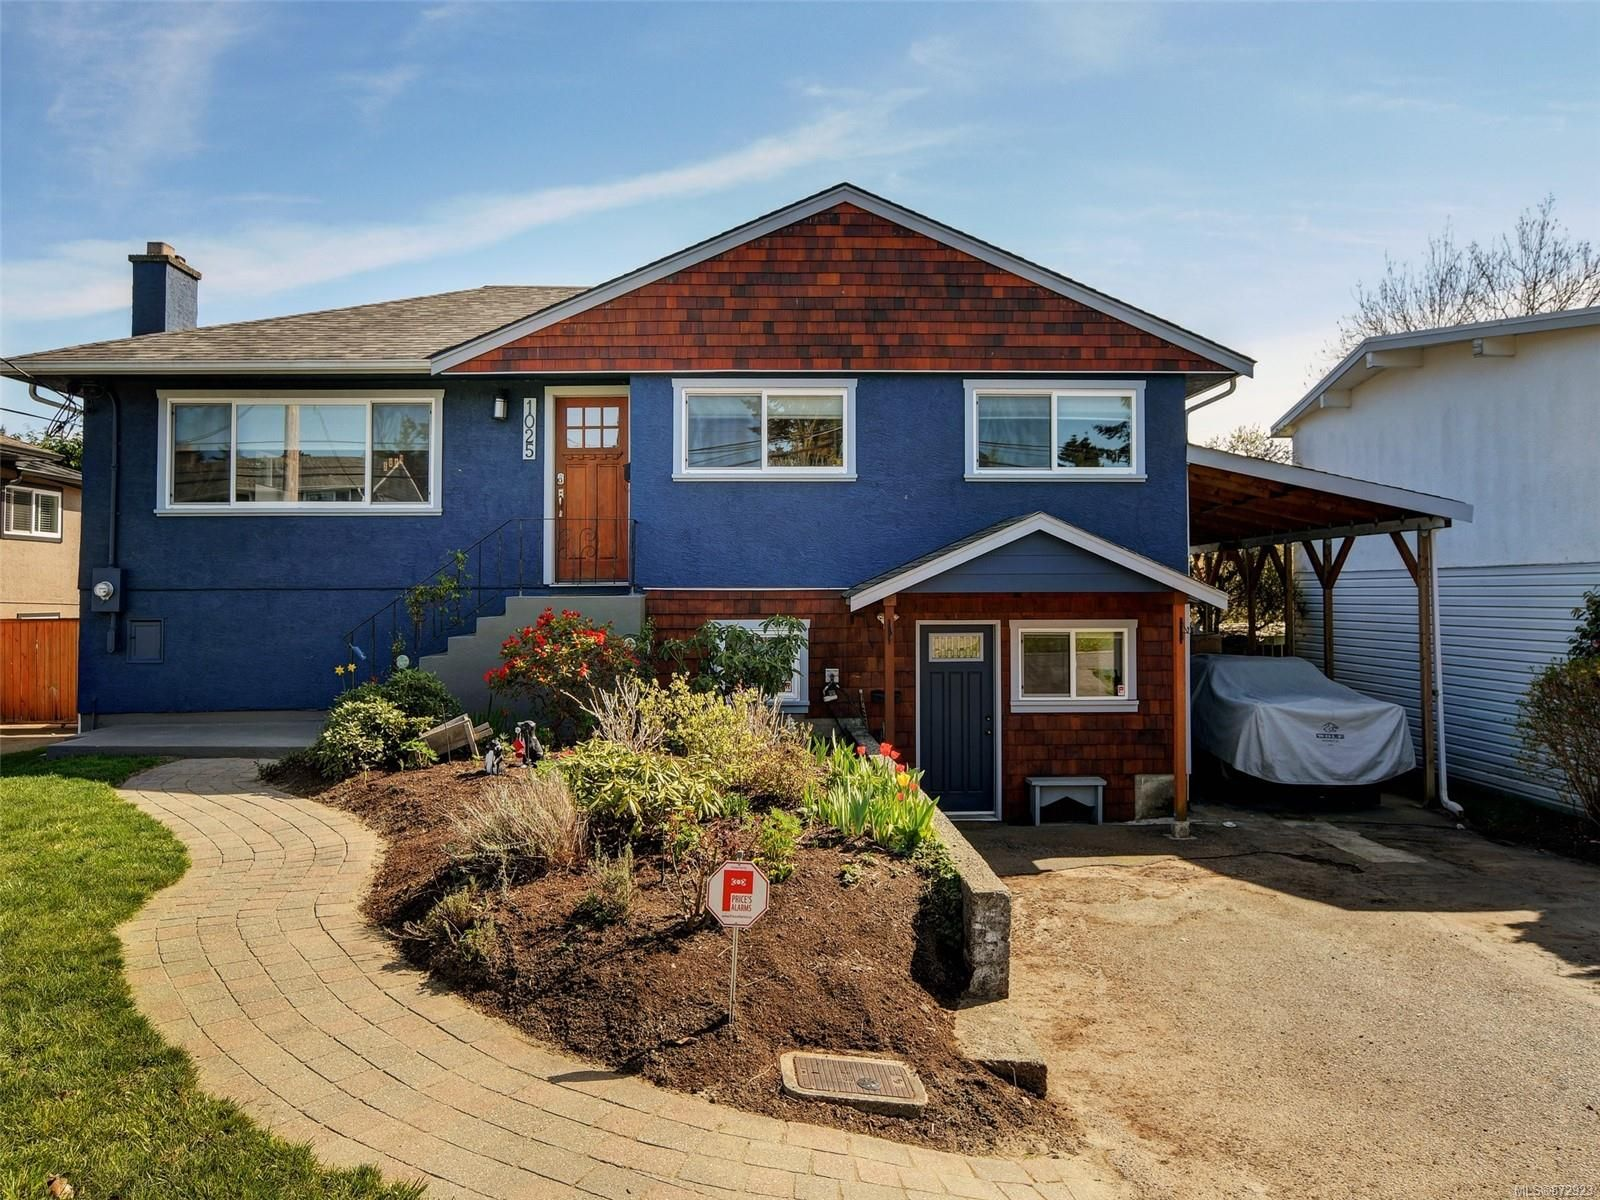 Main Photo: 1025 Nicholson St in : SE Lake Hill House for sale (Saanich East)  : MLS®# 872923